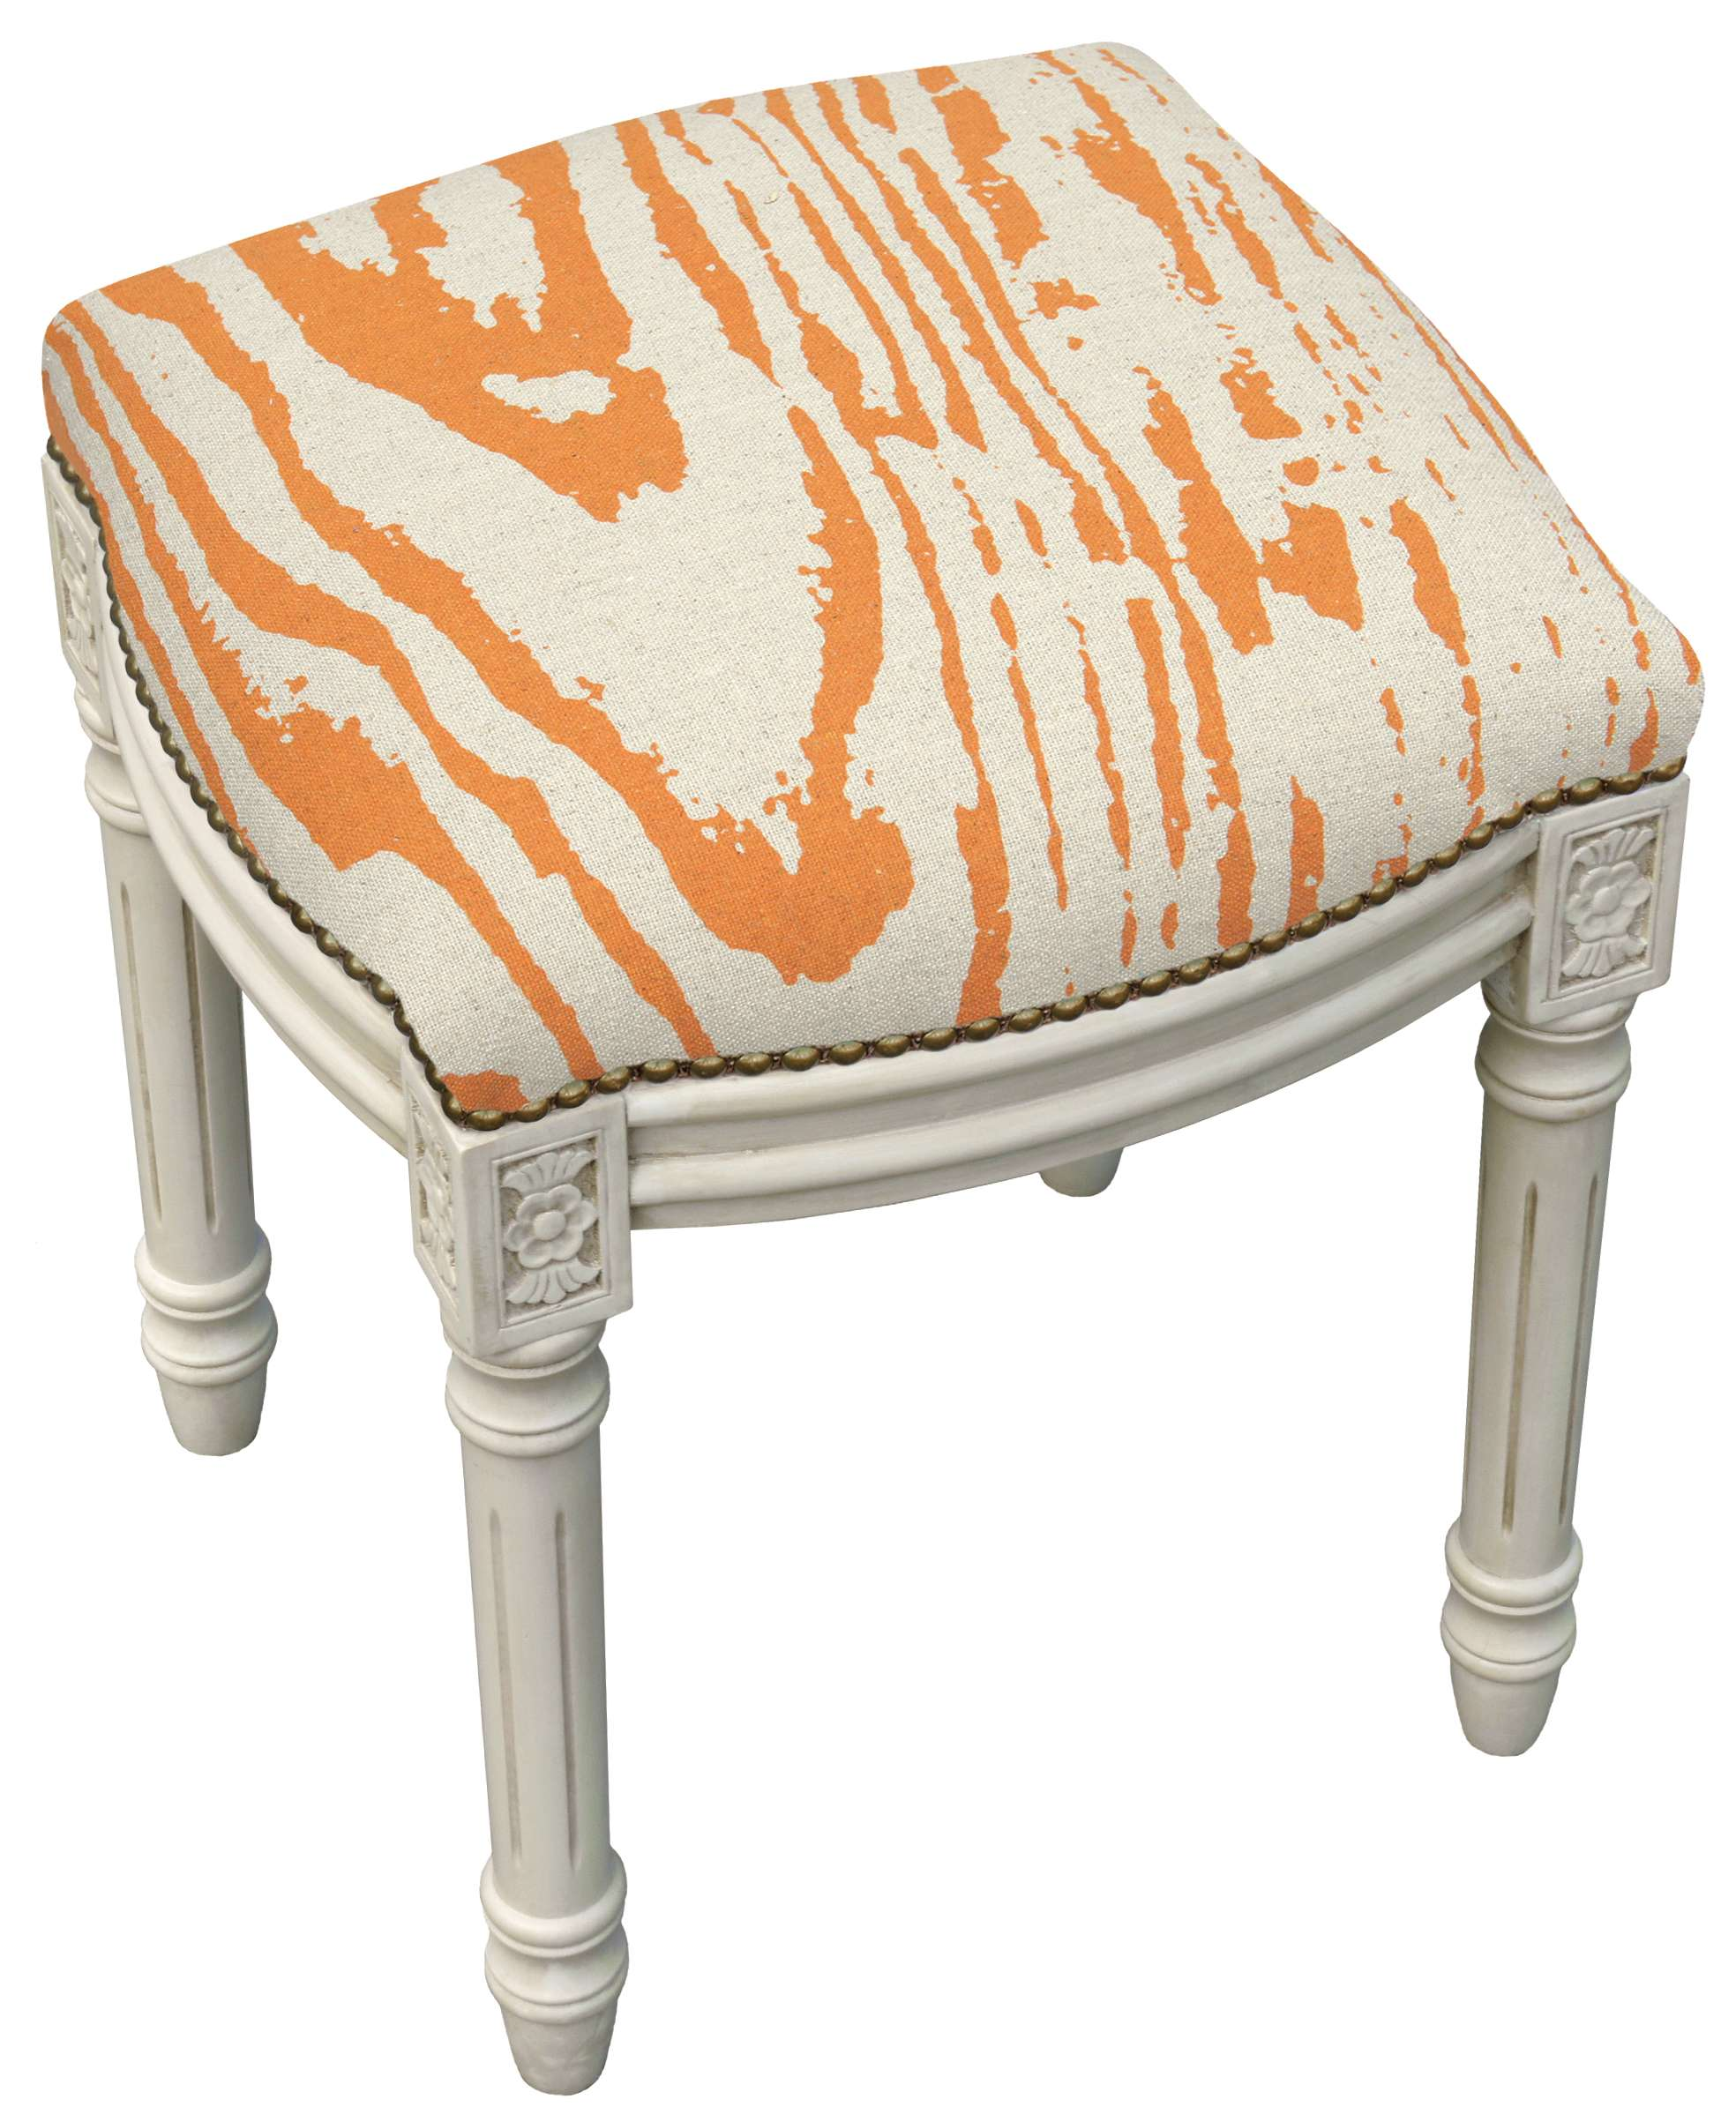 Marvelous 123 Creations Orange Faux Bois Linen Upholstered Vanity Stool With Antique Whitewash Finish Reviews Goedekers Com Theyellowbook Wood Chair Design Ideas Theyellowbookinfo